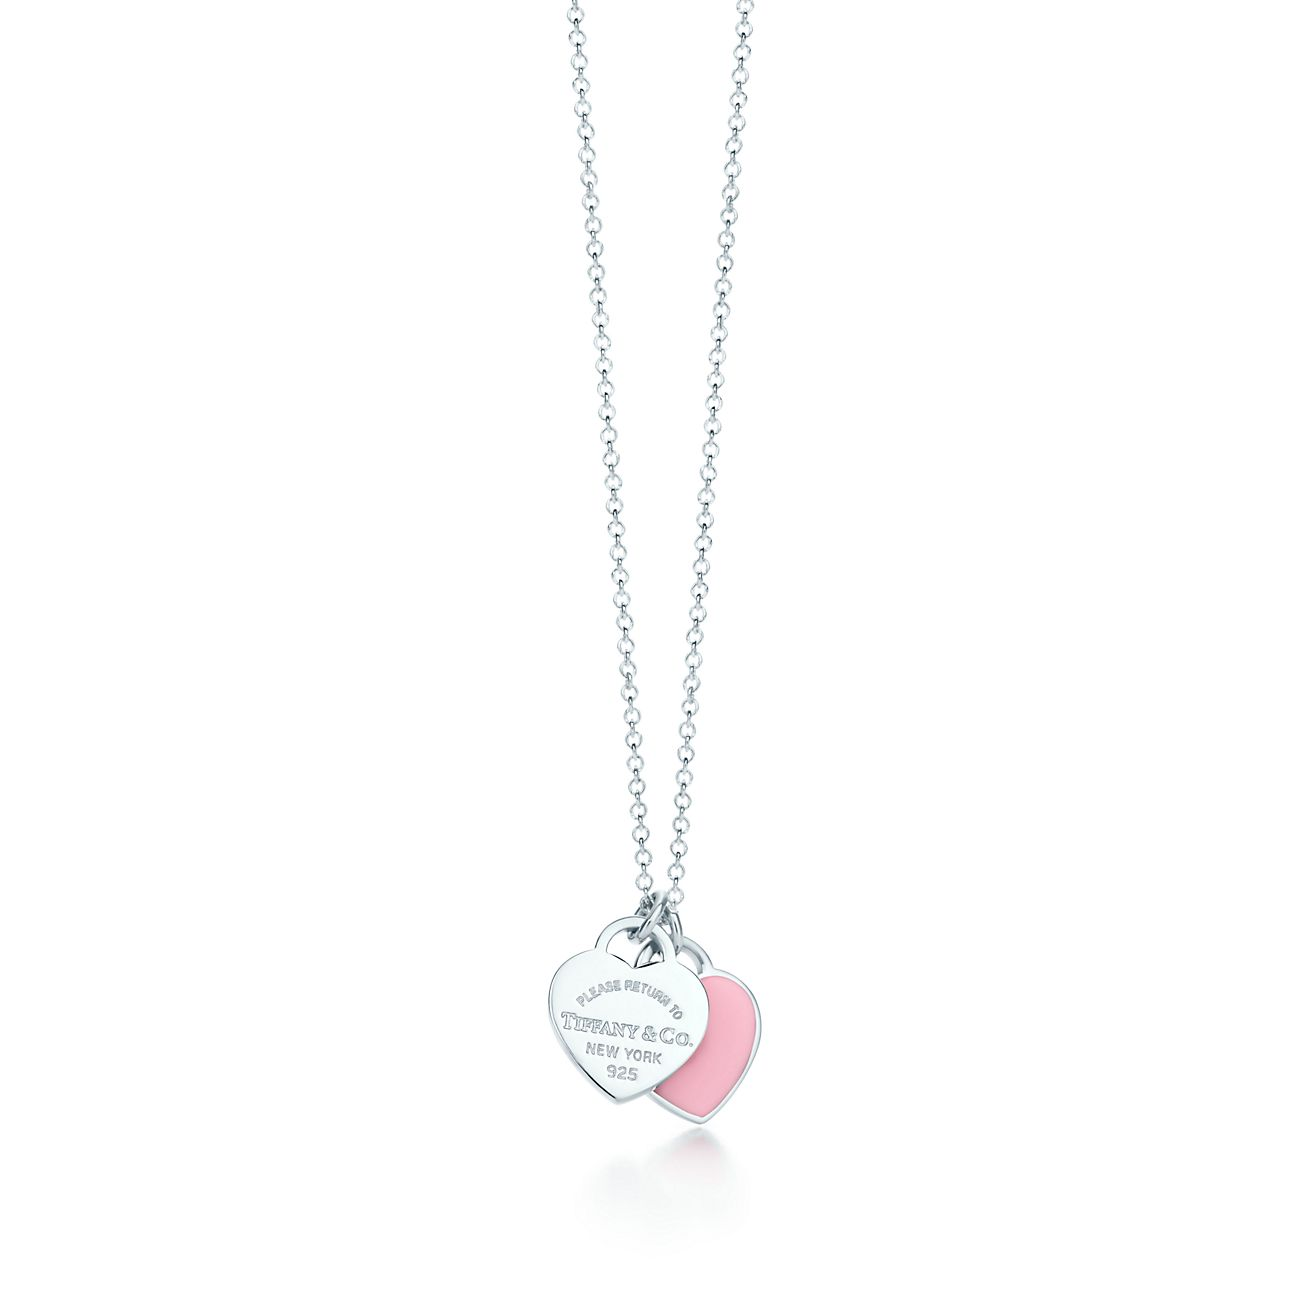 Return to Tiffany double heart pendant in silver with red enamel finish Tiffany & Co. nXmYMtkFgG